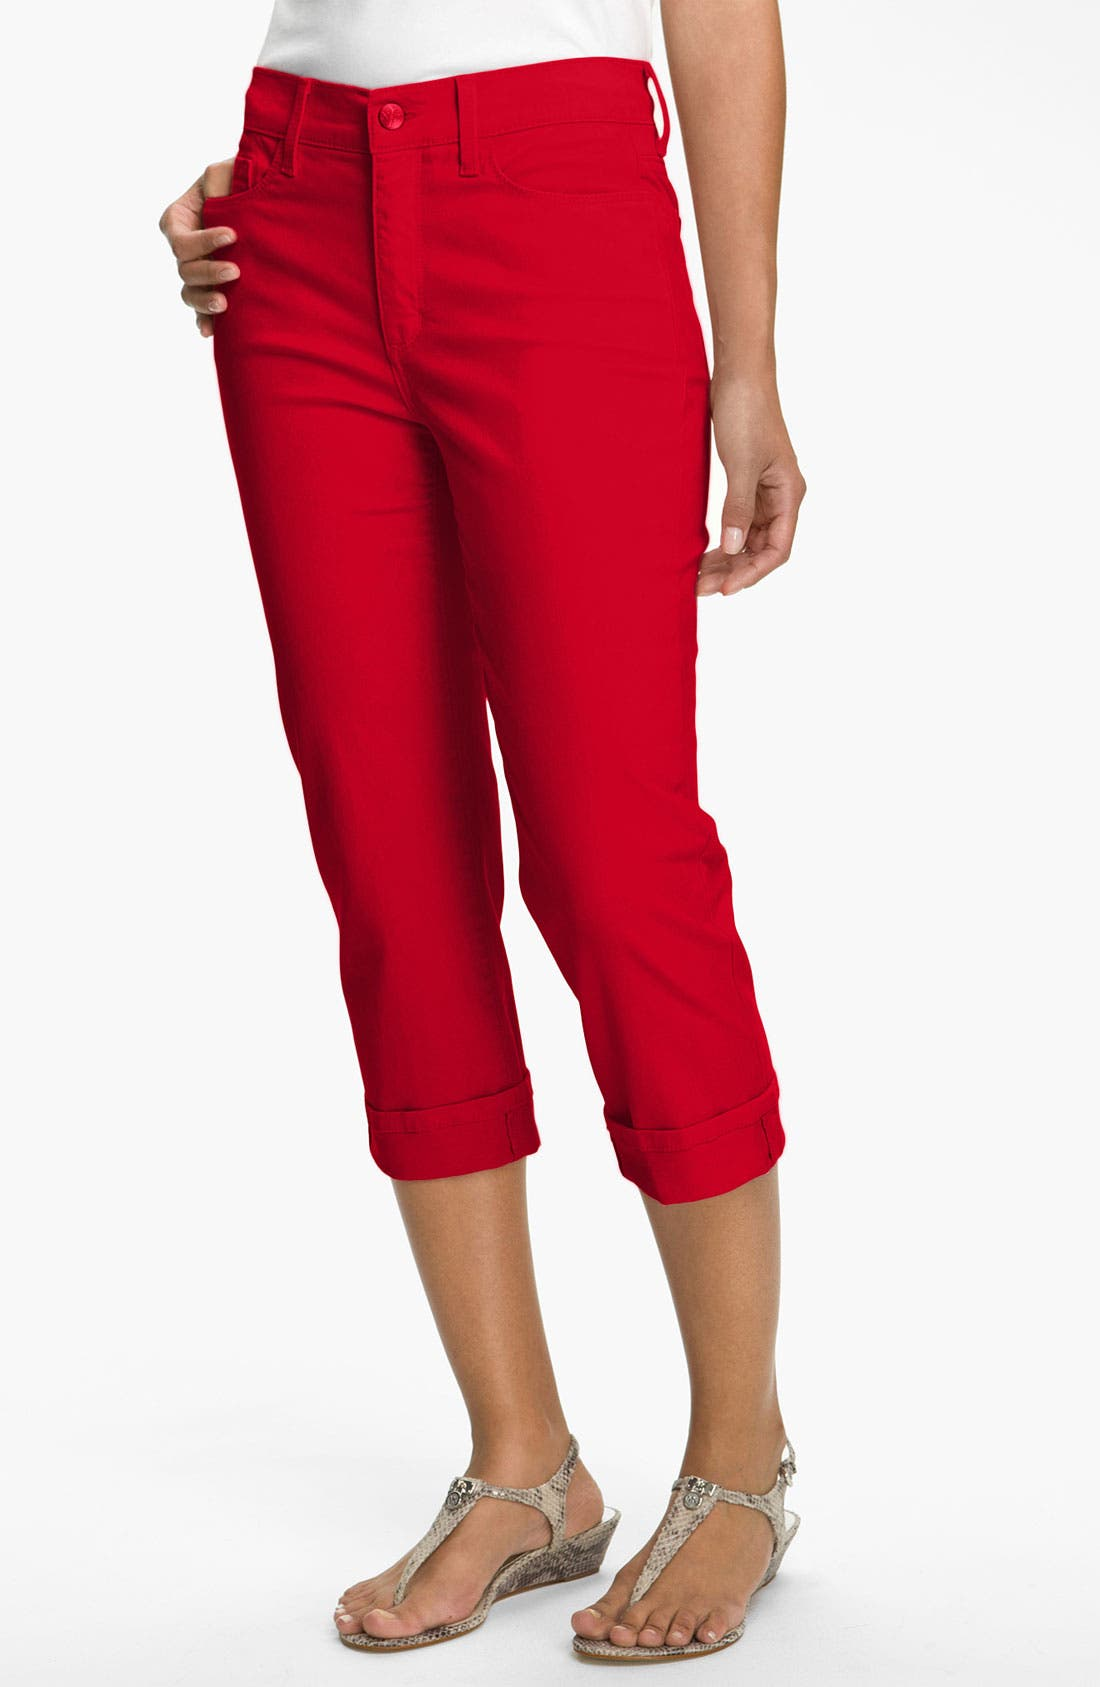 Main Image - NYDJ 'Edna' Colored StretchTwill Crop Jeans